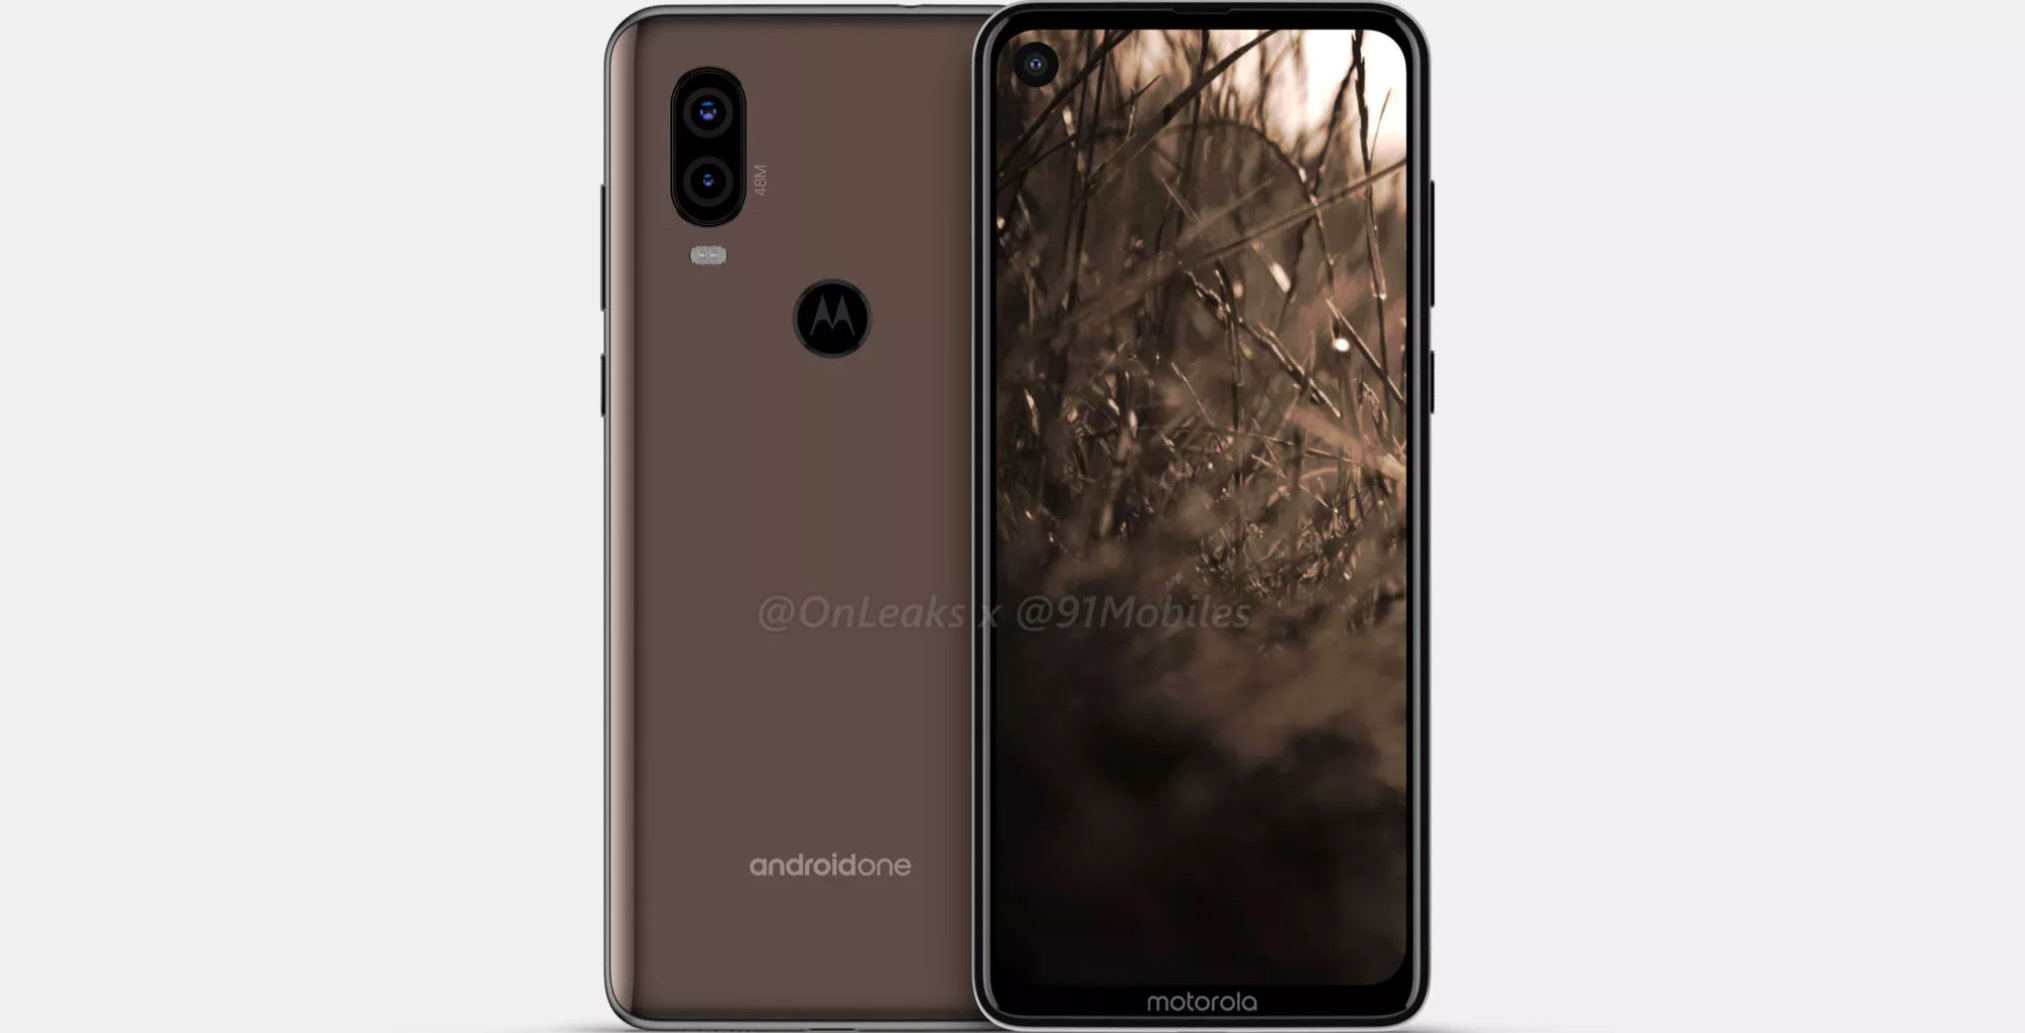 Motorola P40 Specifications and Design Leaked, Reveal Punch-Hole for Selfie Camera